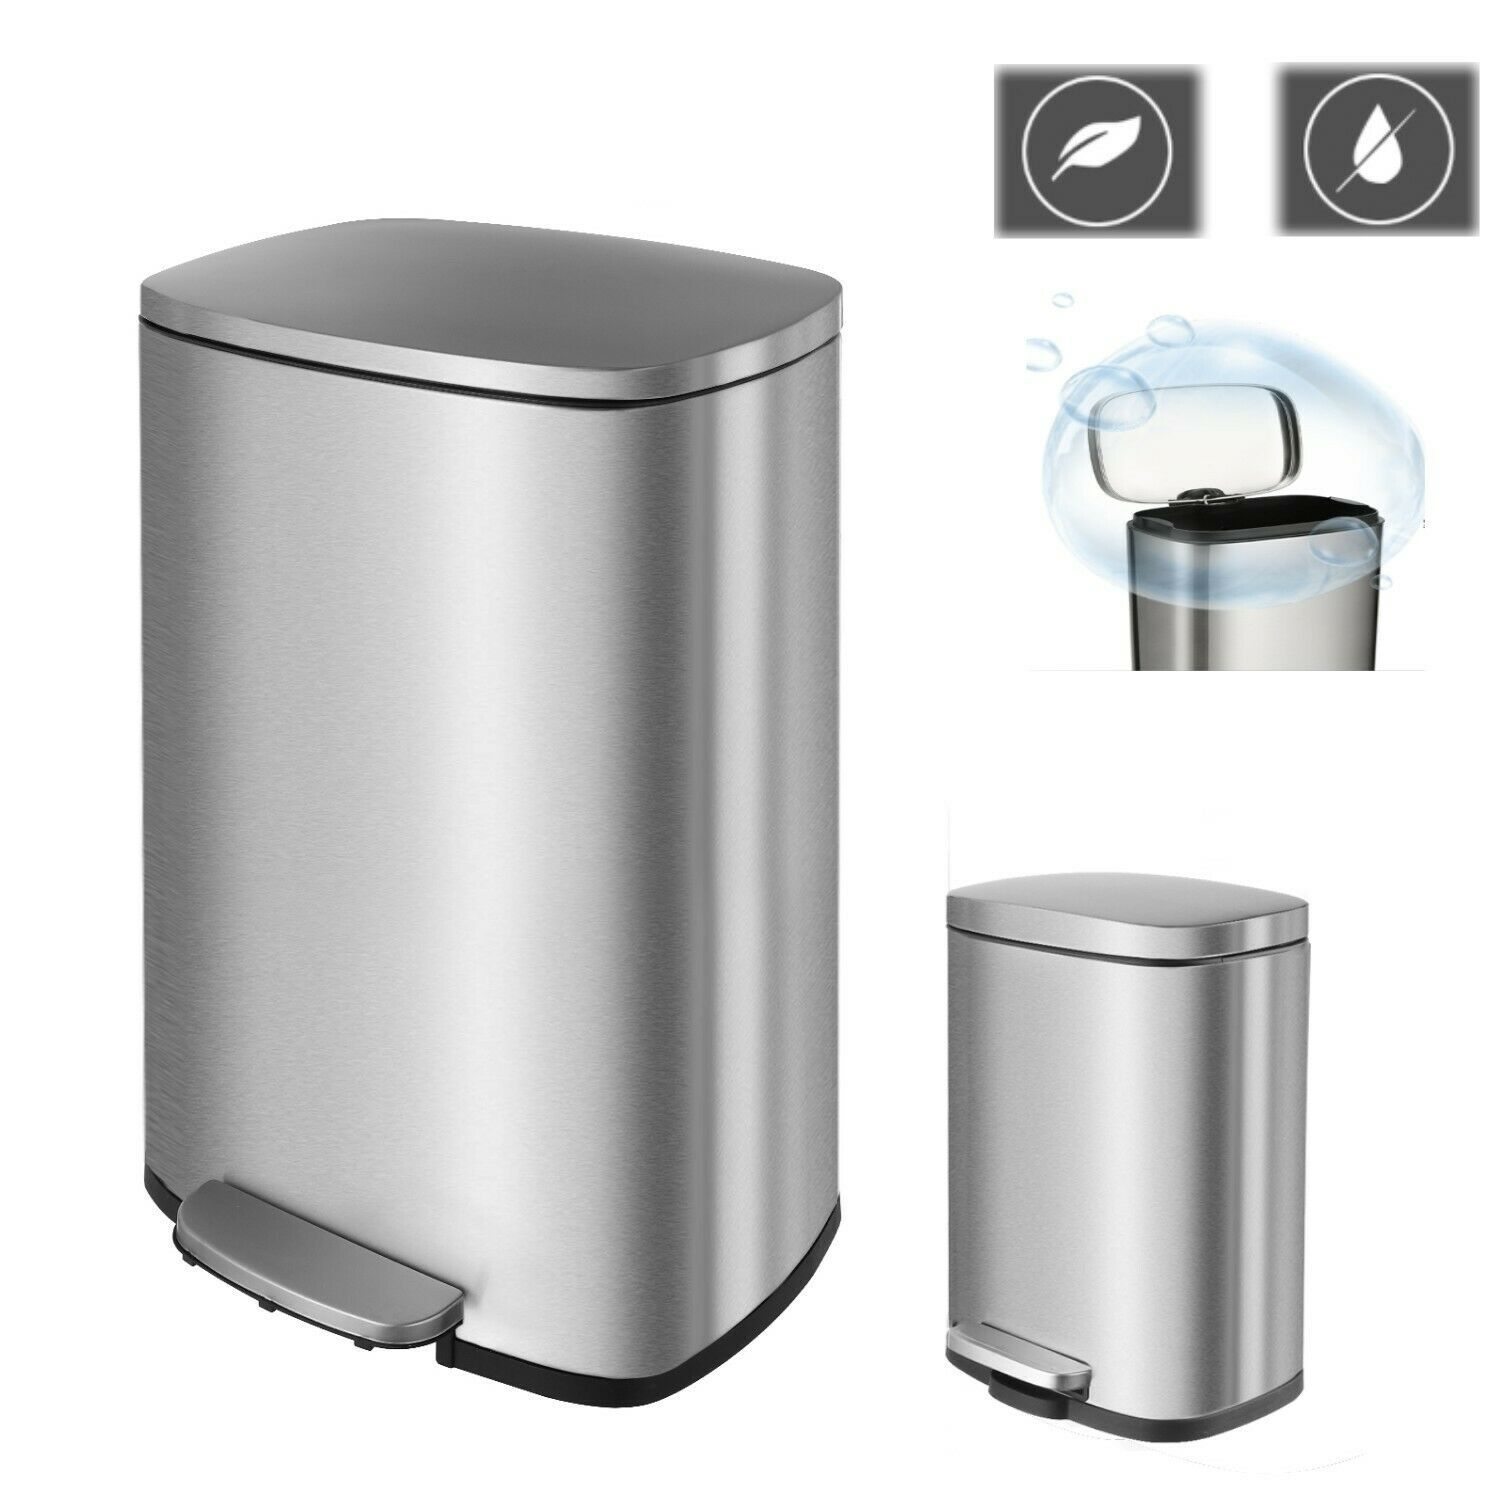 Stainless Steel Step On Trash Can Foot Pedal Storage Bucket Home